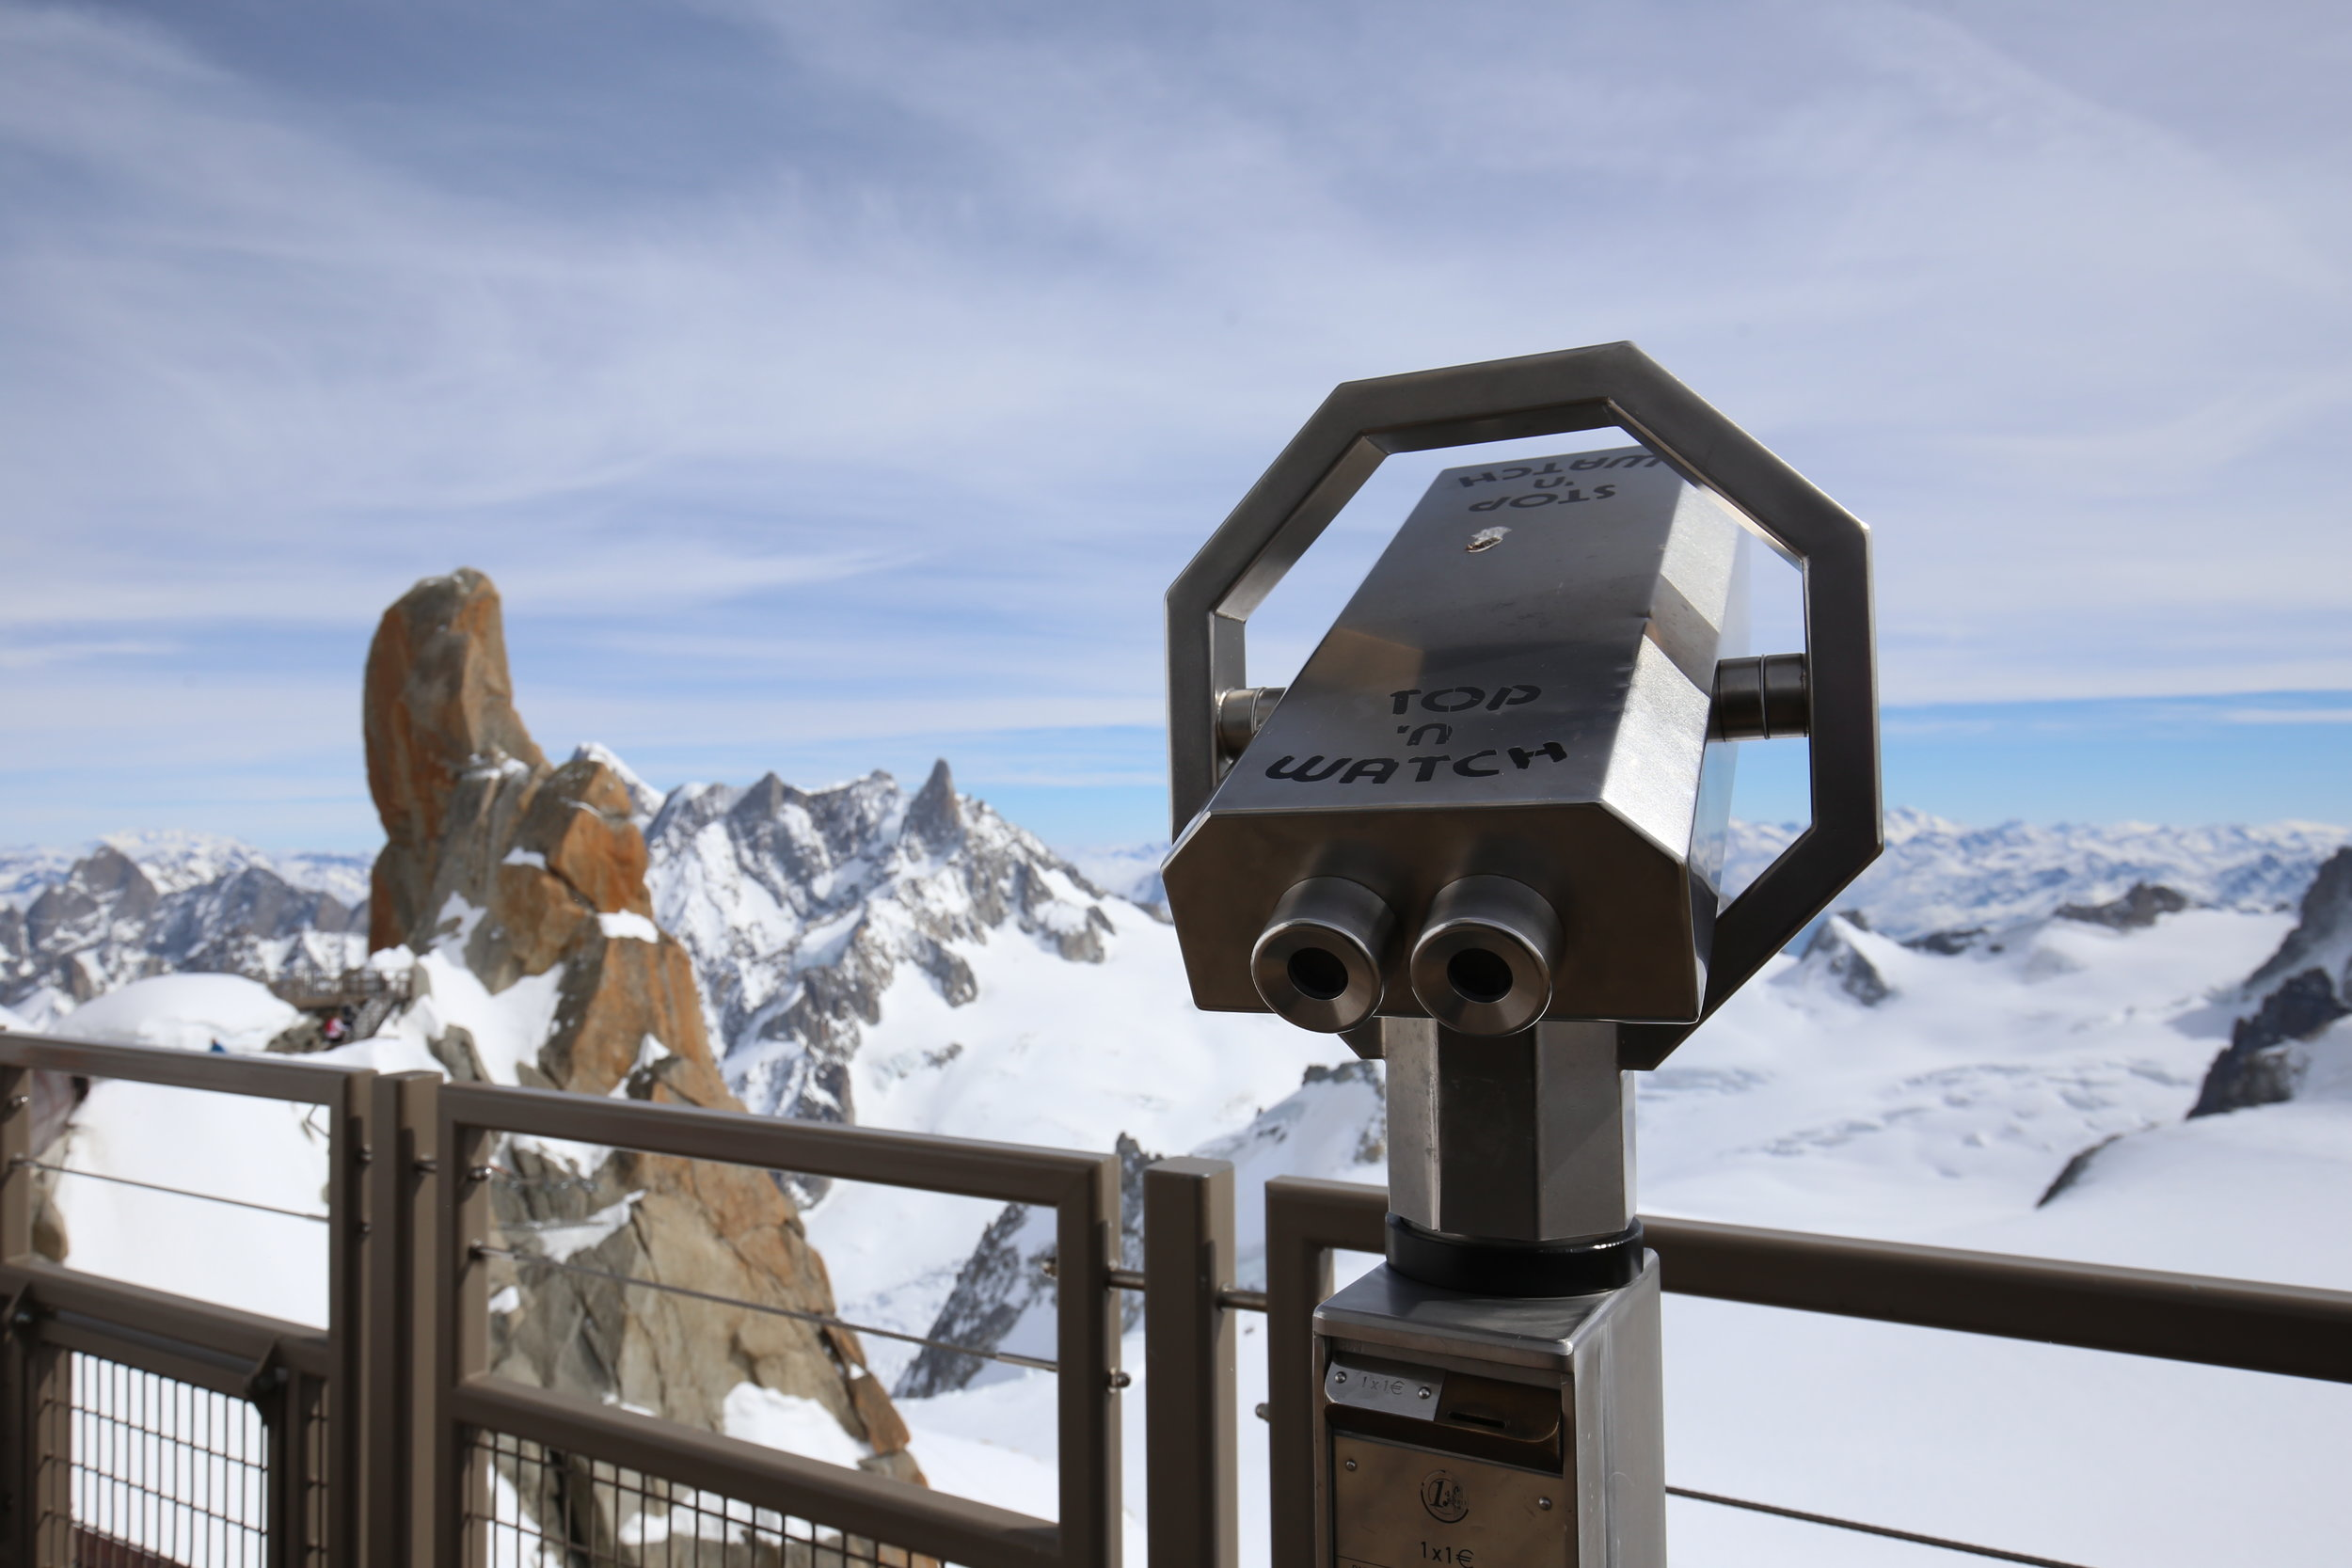 Binoculars to look out over the alps.